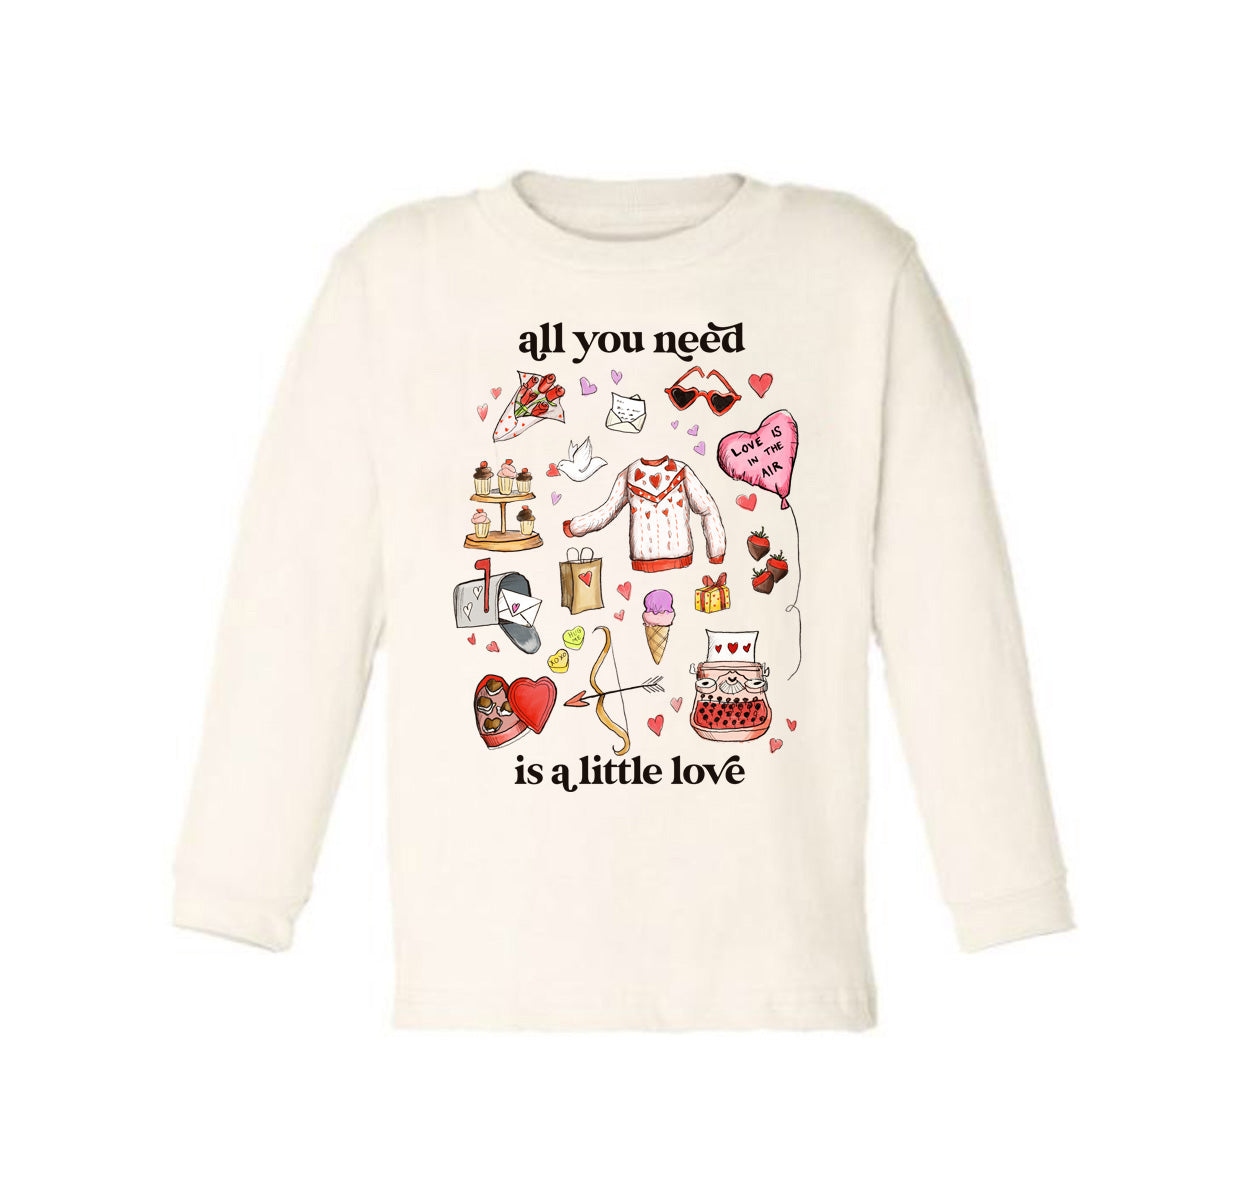 All You Need Is a Little Love [Long Sleeved Toddler Tee]